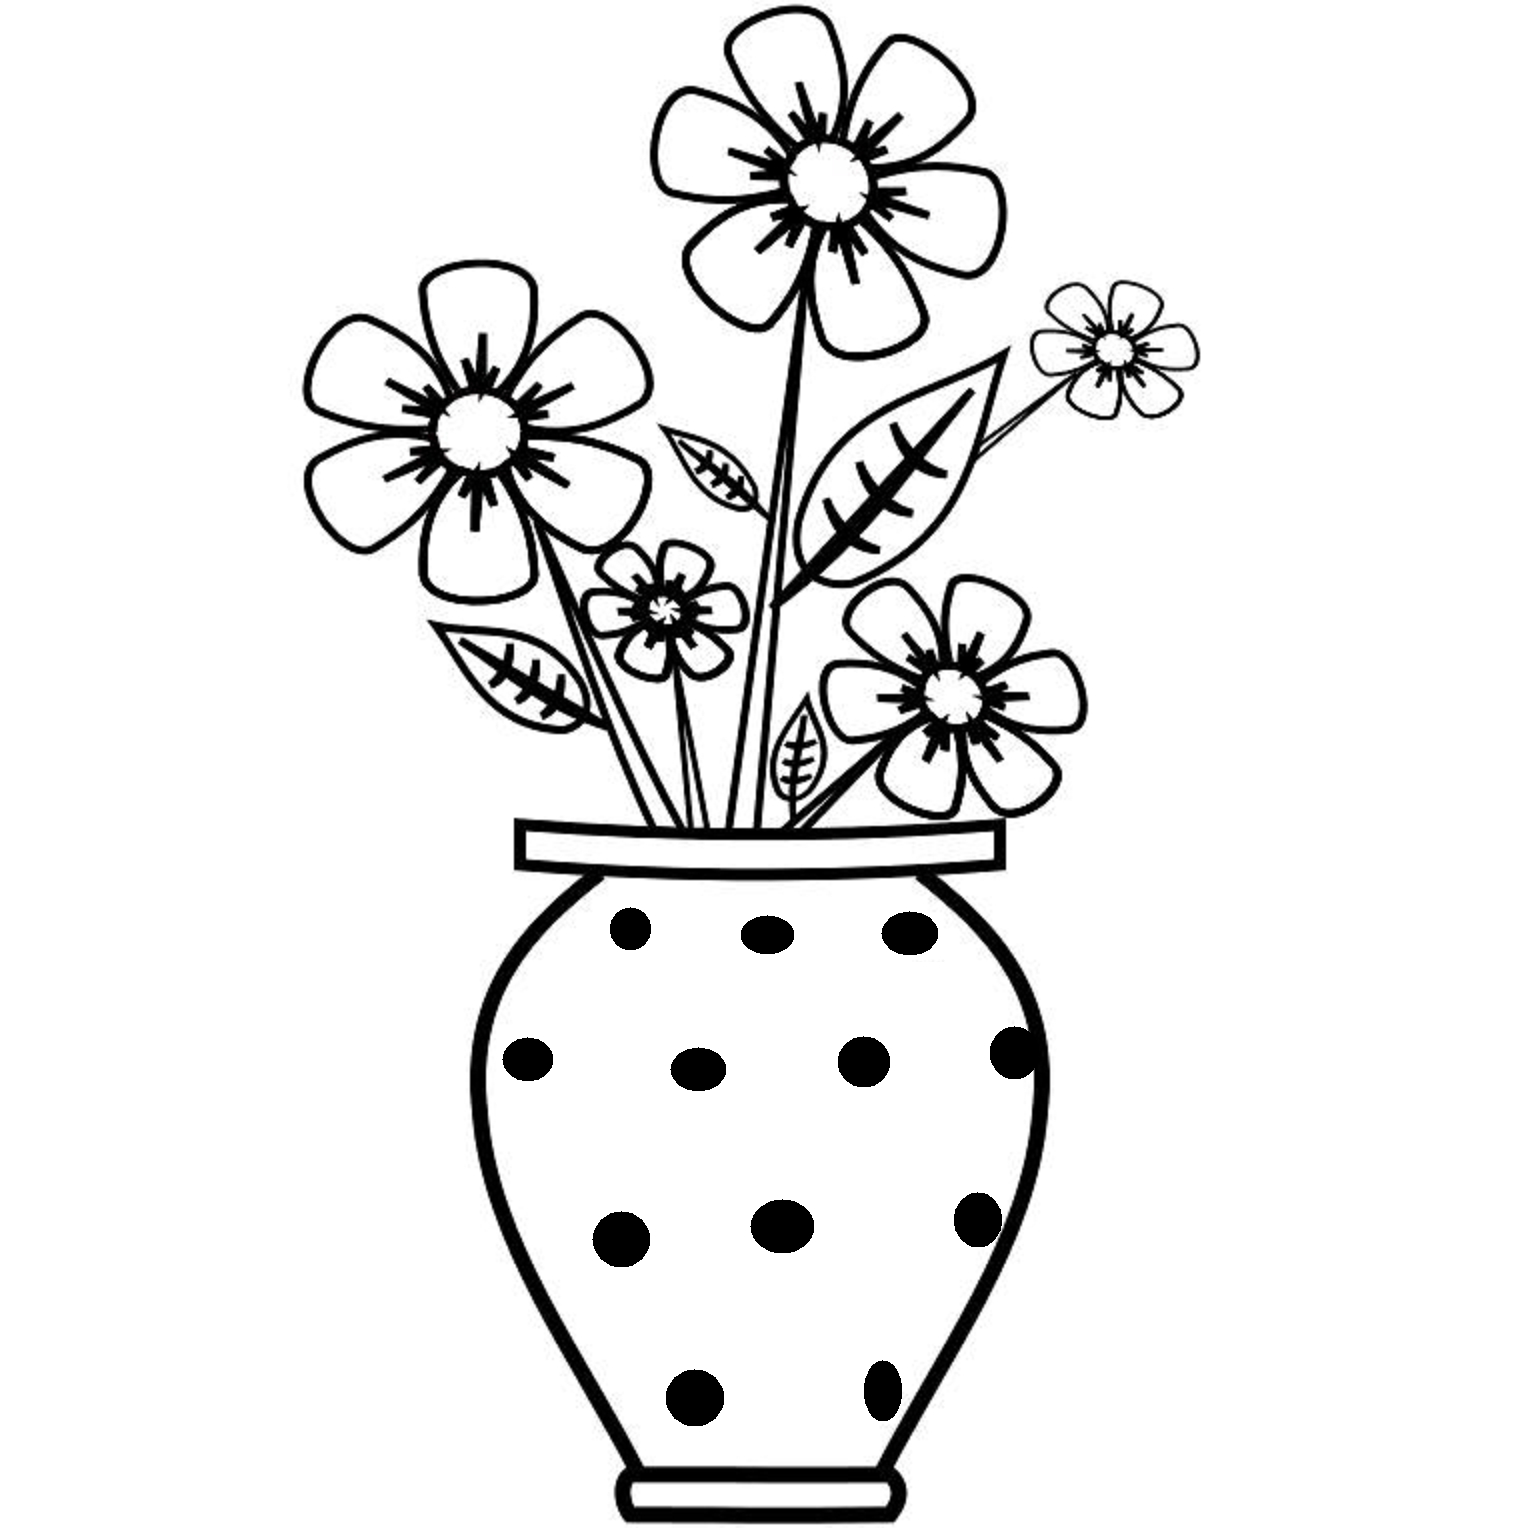 Flowers In A Vase Drawing at GetDrawings.com | Free for personal use on vase of sunflowers clip art, cartoon vase clip art, roses clip art, vase with flowers, pot of flowers clip art, blanket of flowers clip art, butterfly clip art, daisy flower clip art, tree clip art, antique vase clip art, vase of tulips clip art, rug clip art, flower vase pattern clip art, black flower vase clip art, books clip art, flower border clip art, basket of flowers clip art, broken vase clip art, row of flowers clip art, vase clip art template,